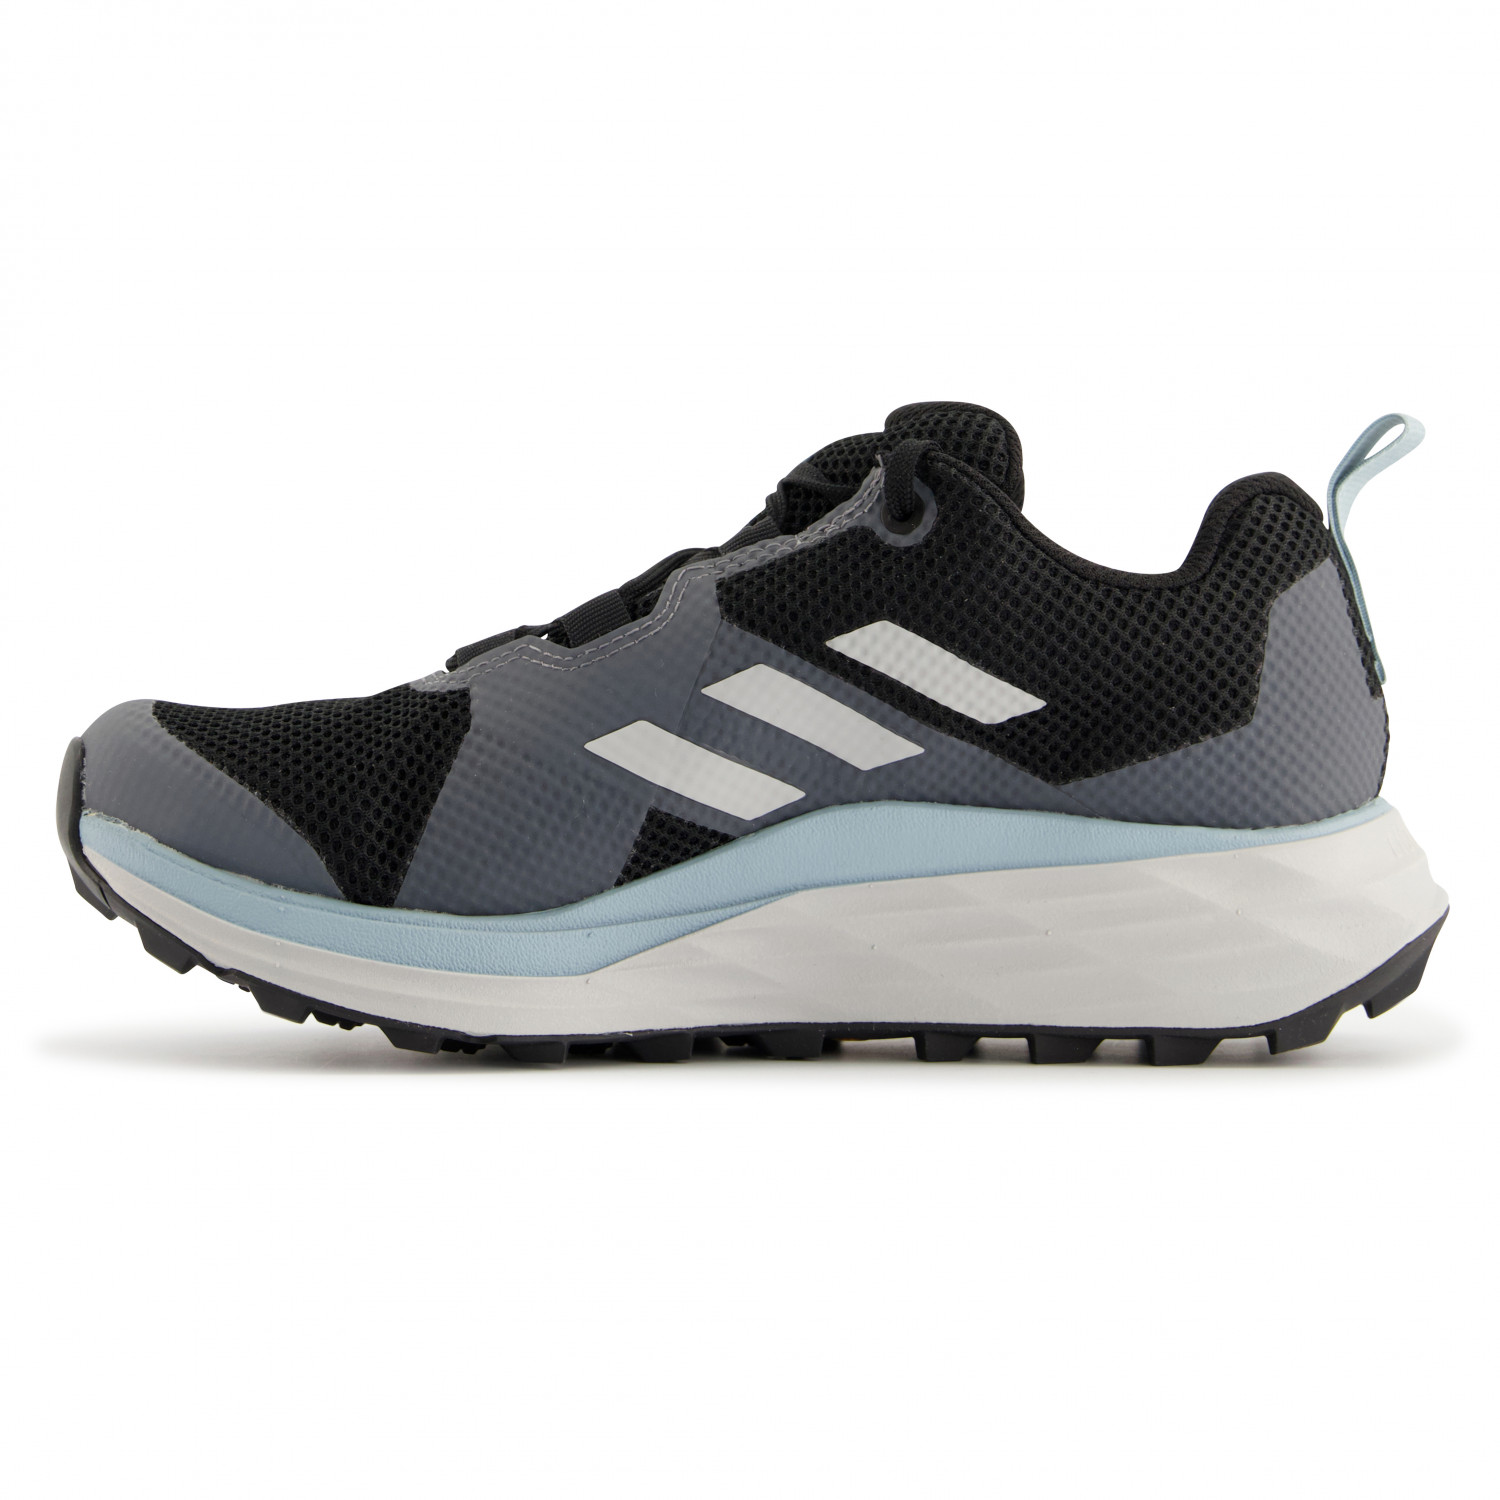 adidas - Women's Terrex Two GTX - Trail running shoes - Core Black / Grey  Three / Ash Grey | 4 (UK)